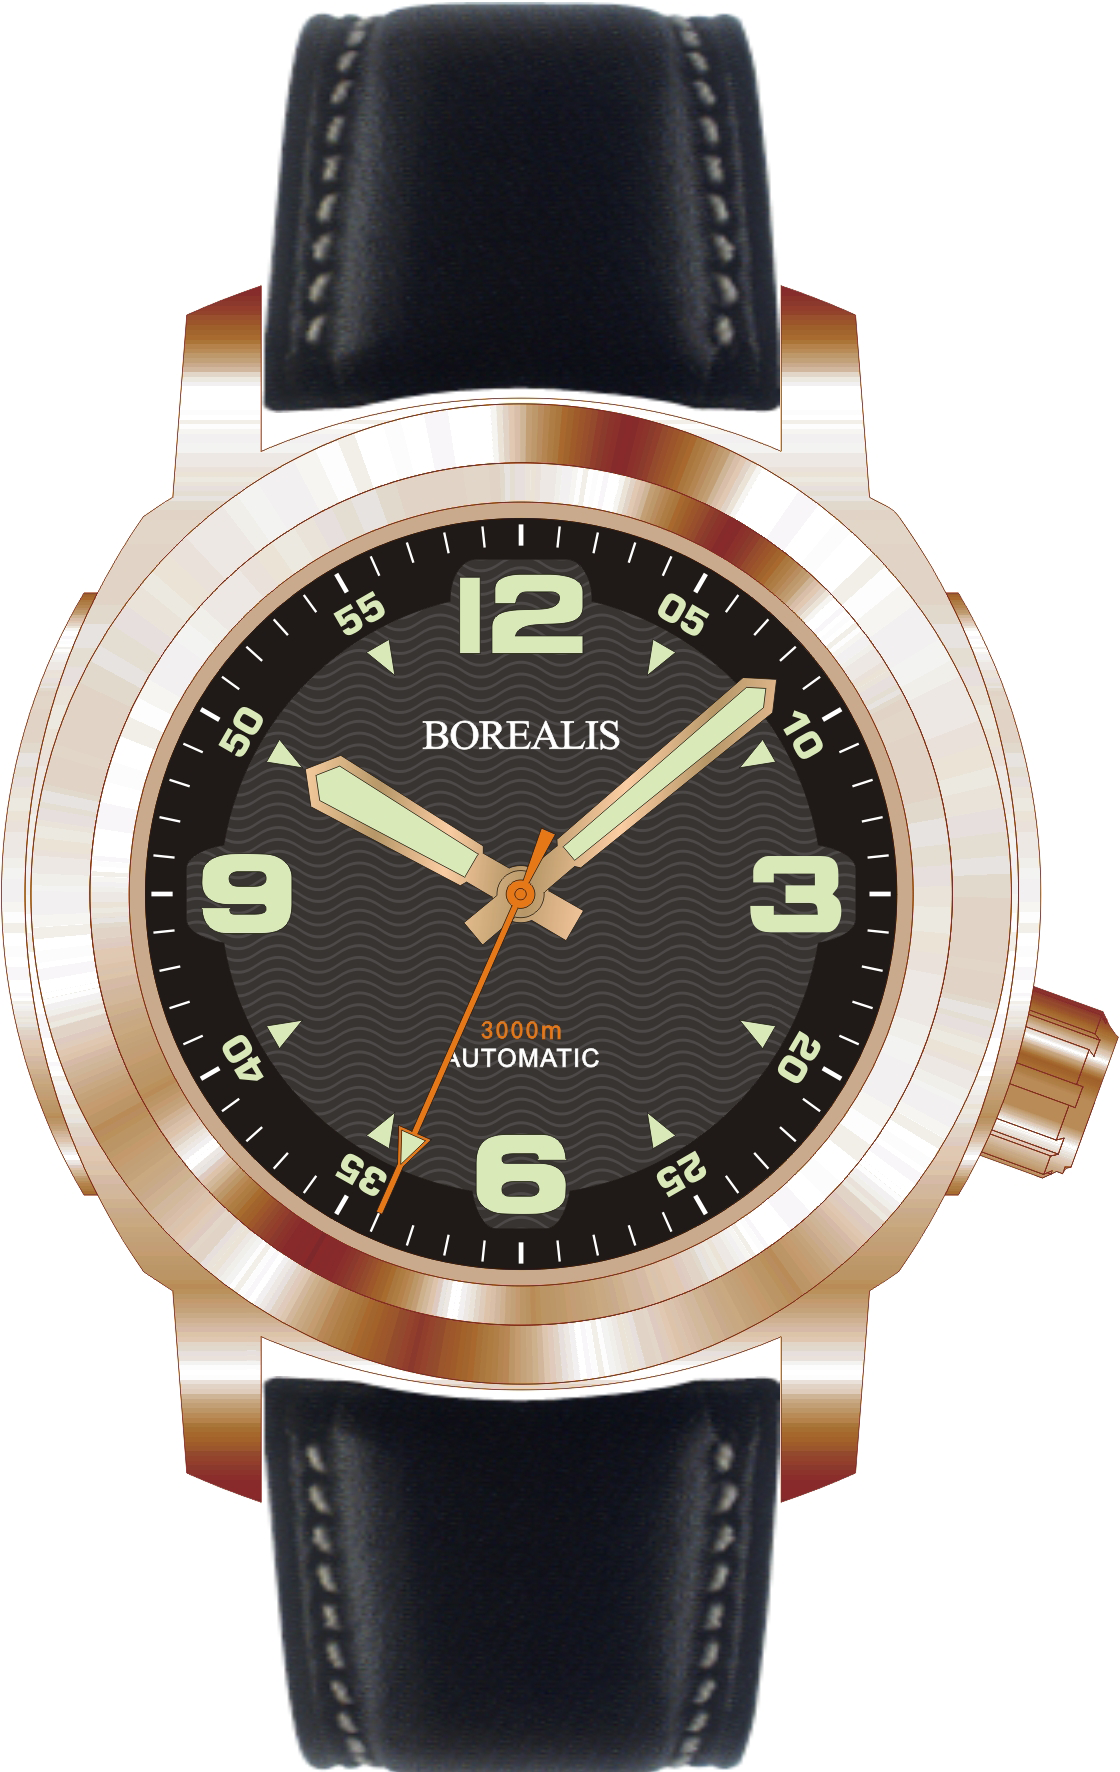 Borealis Batial Bronze CuSn8 Black 3000m Miyota 9015 Automatic Diver Watch No Date Display BBCUSN8BLACKNODATE